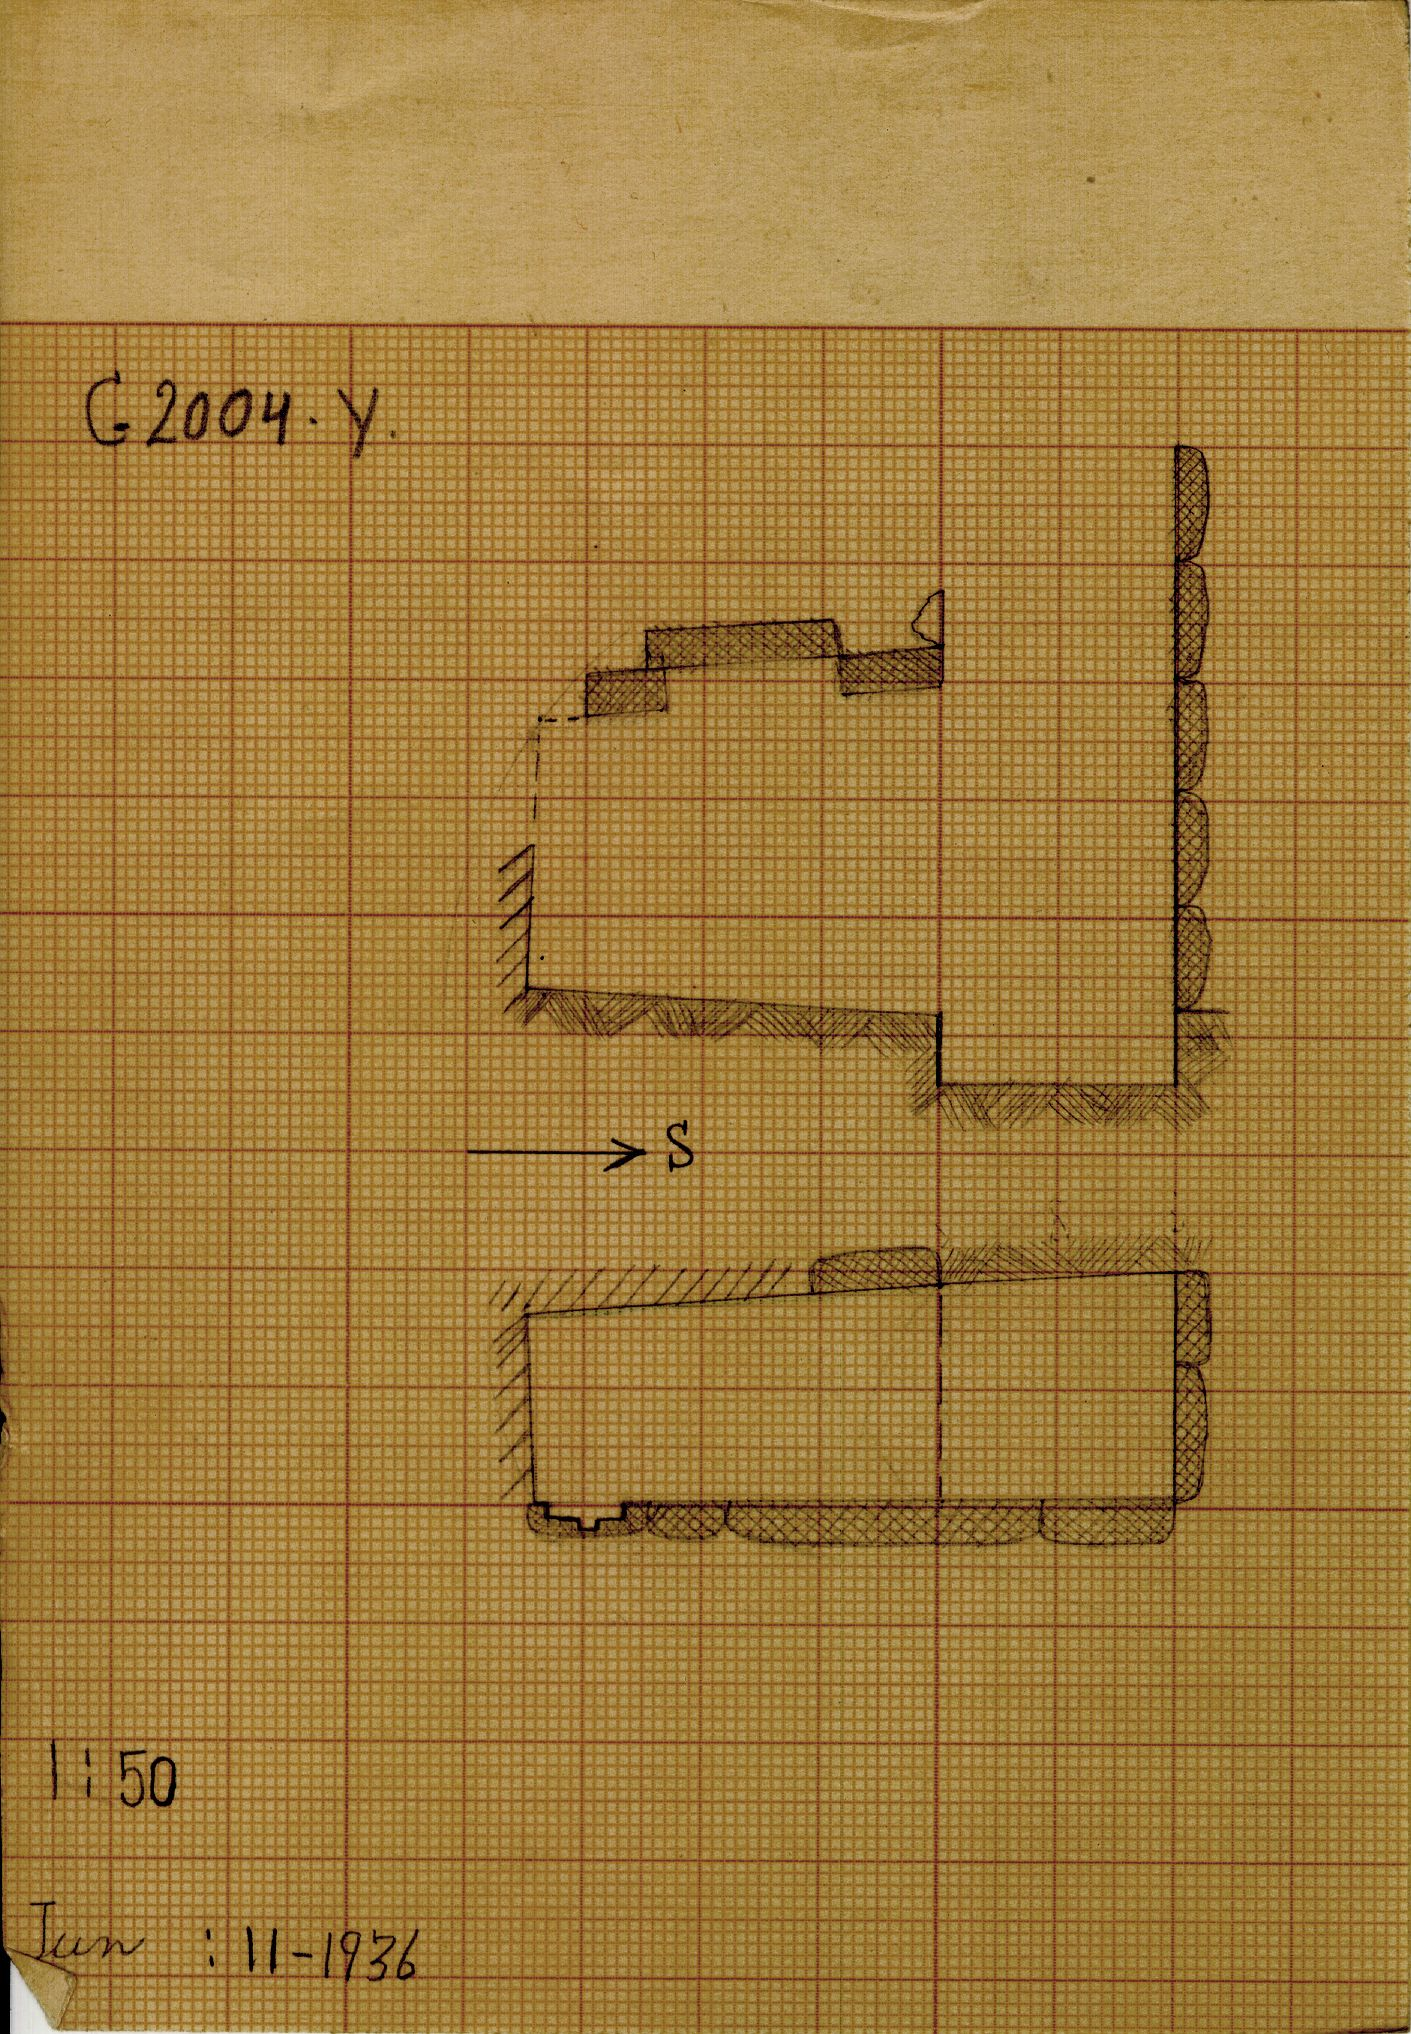 Maps and plans: G 2004, Shaft Y